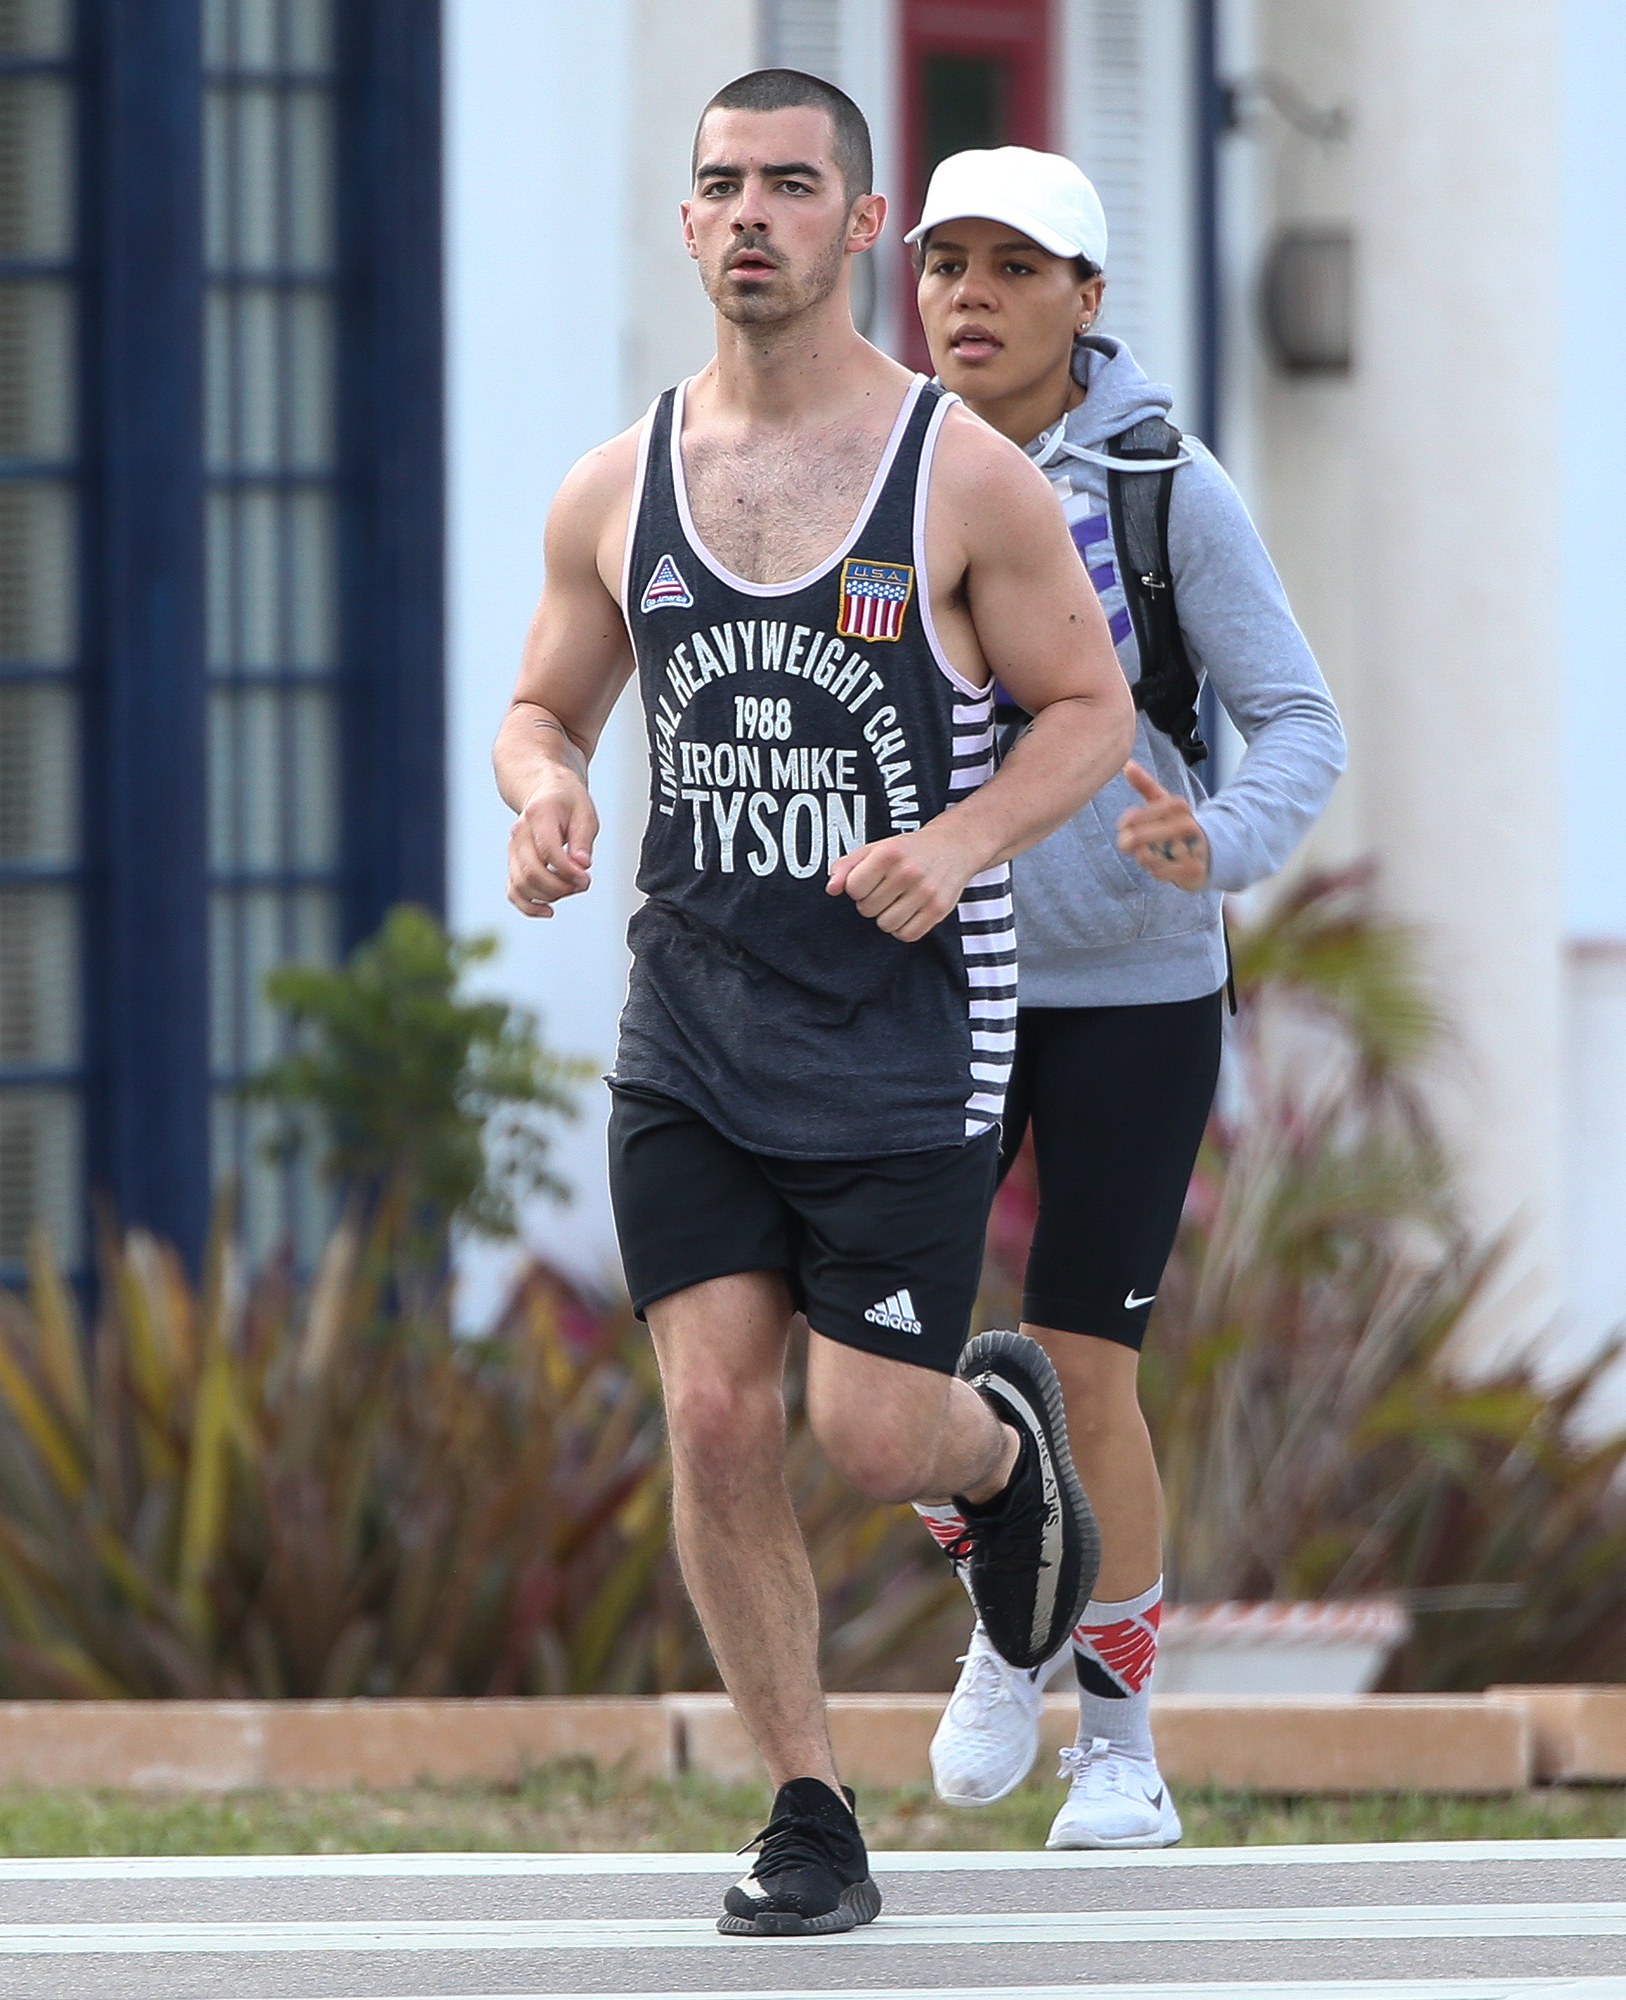 EXCLUSIVE: Joe Jonas shows off his biceps as he pounds the pavement on his day off in Miami